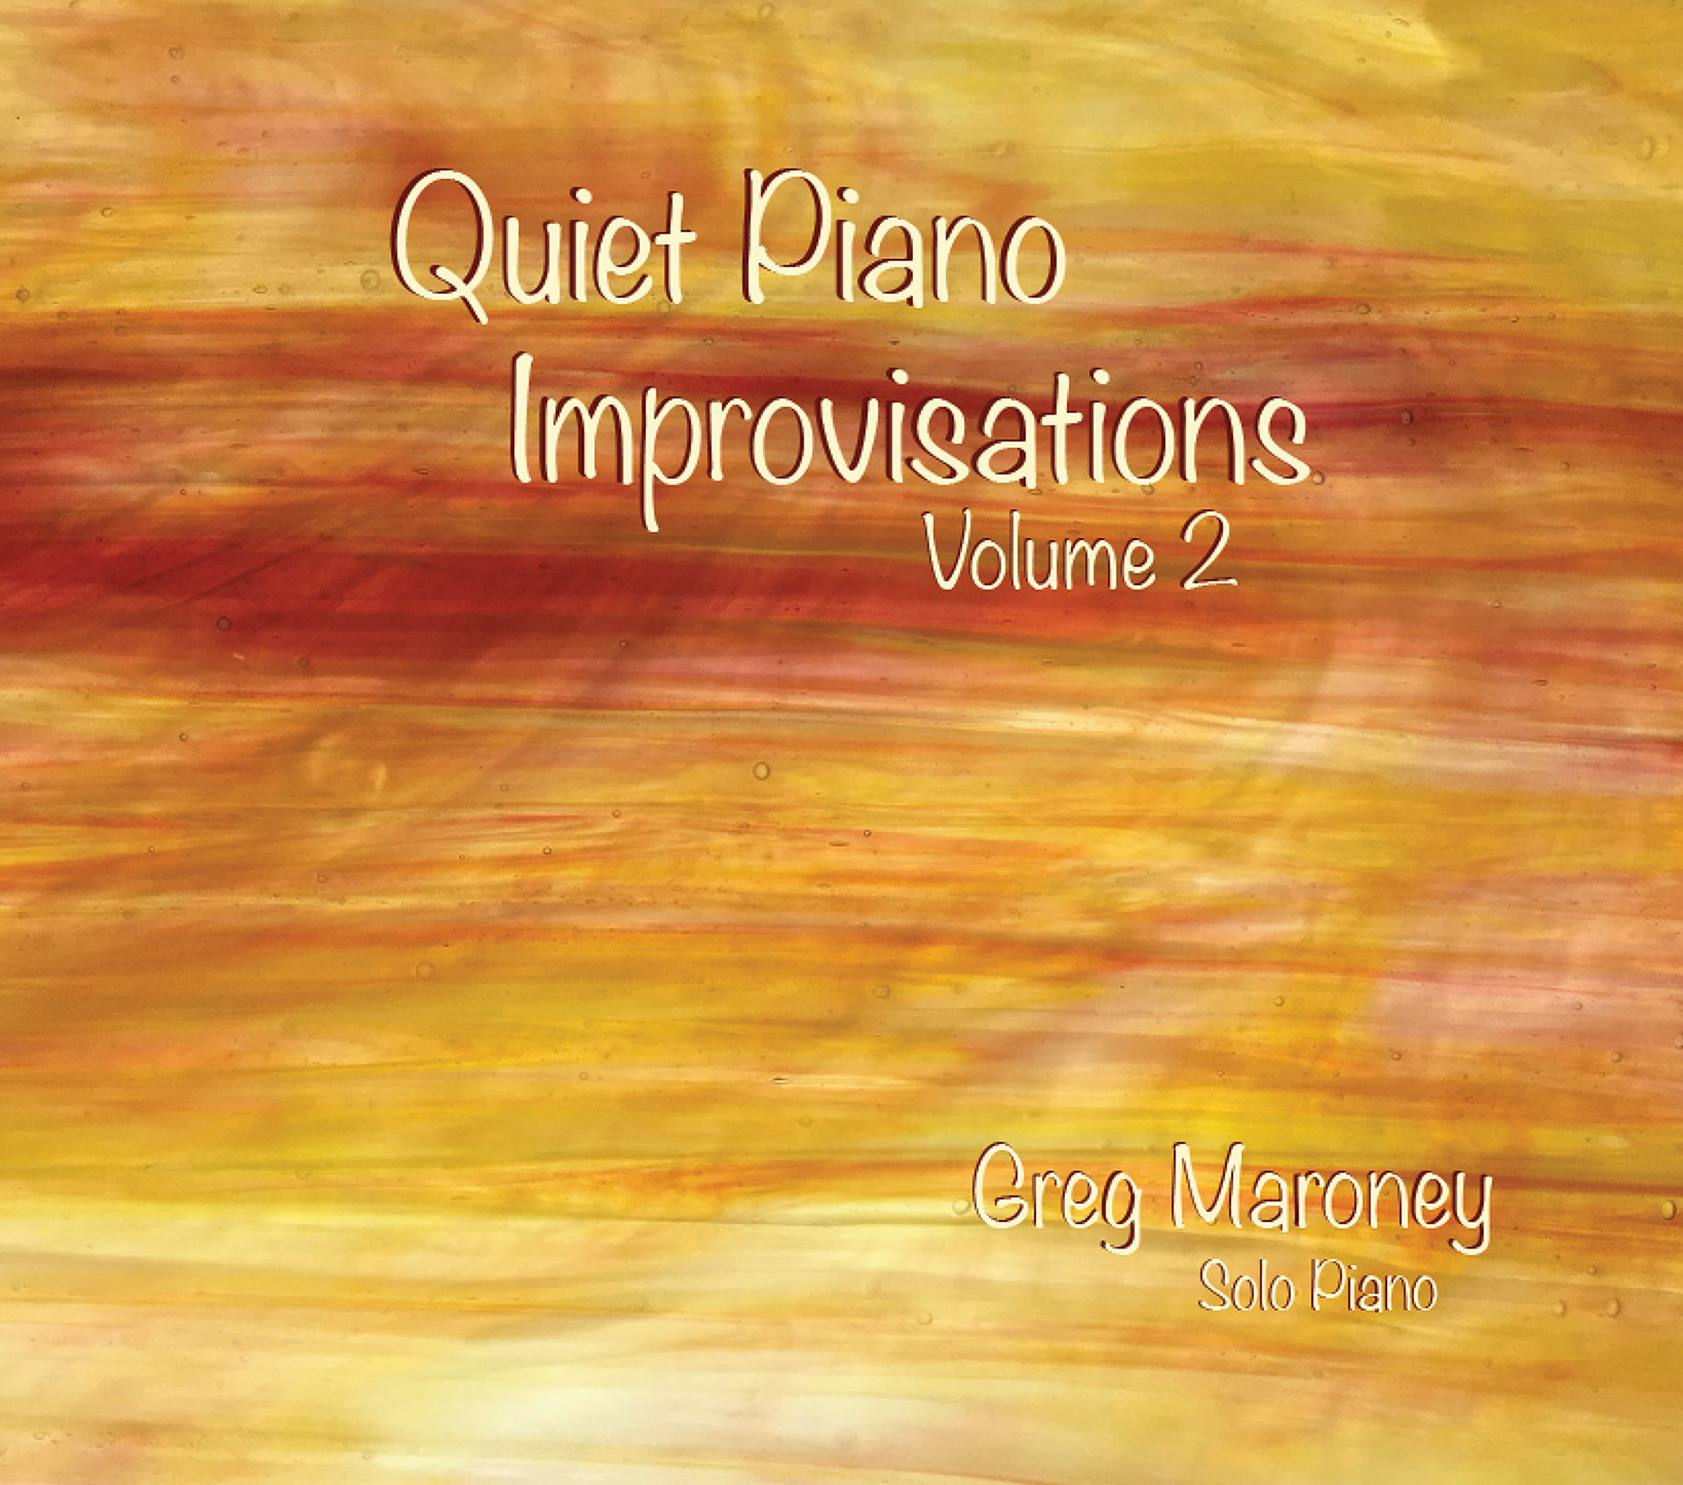 Greg Maroney - Quiet Piano Improvisa